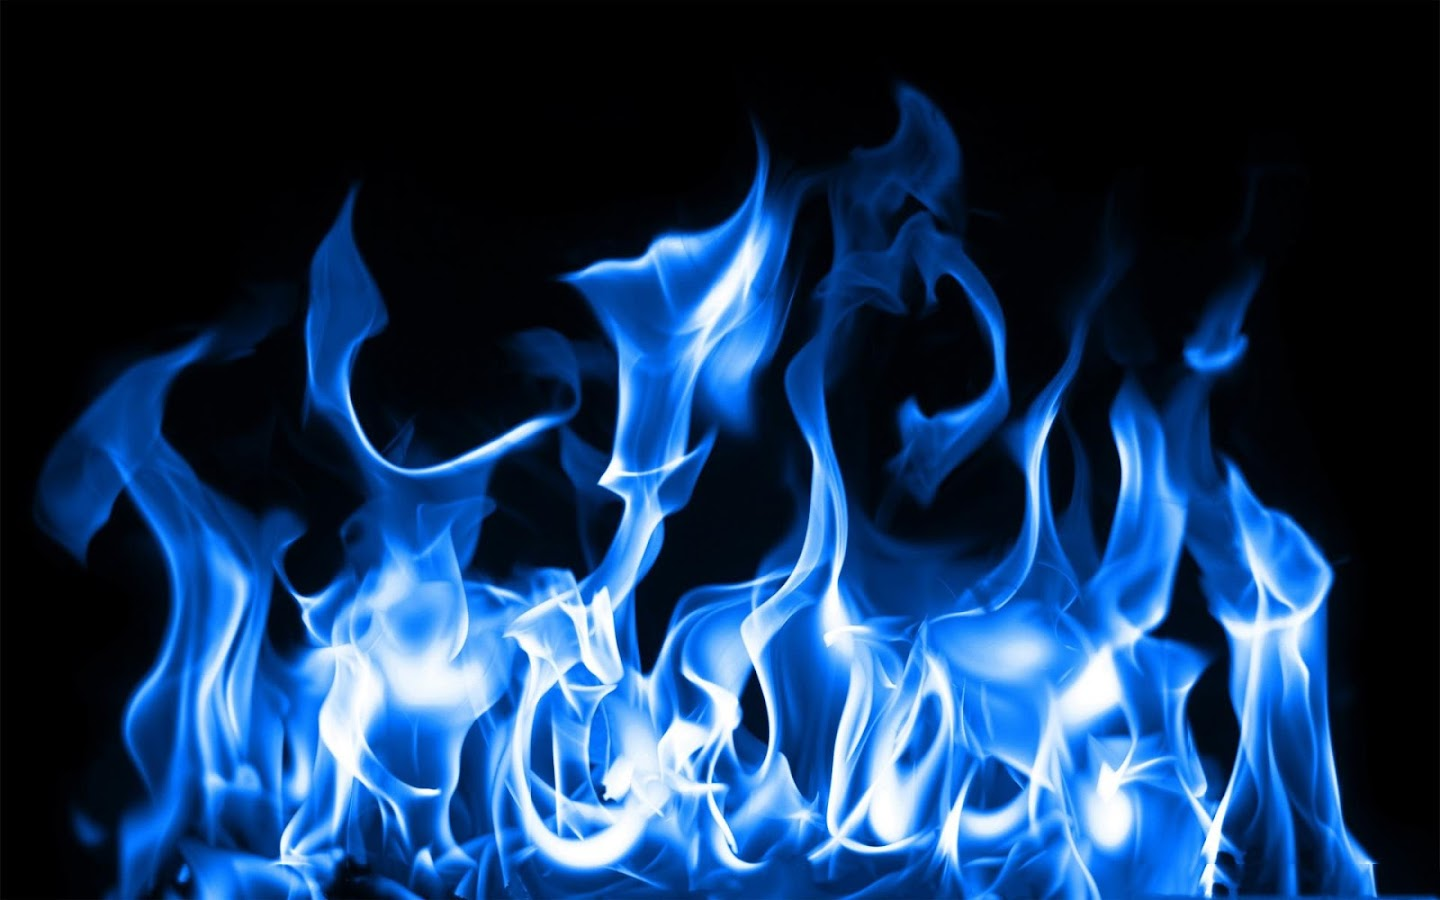 blue fire live wallpaper 1.02 apk download - android